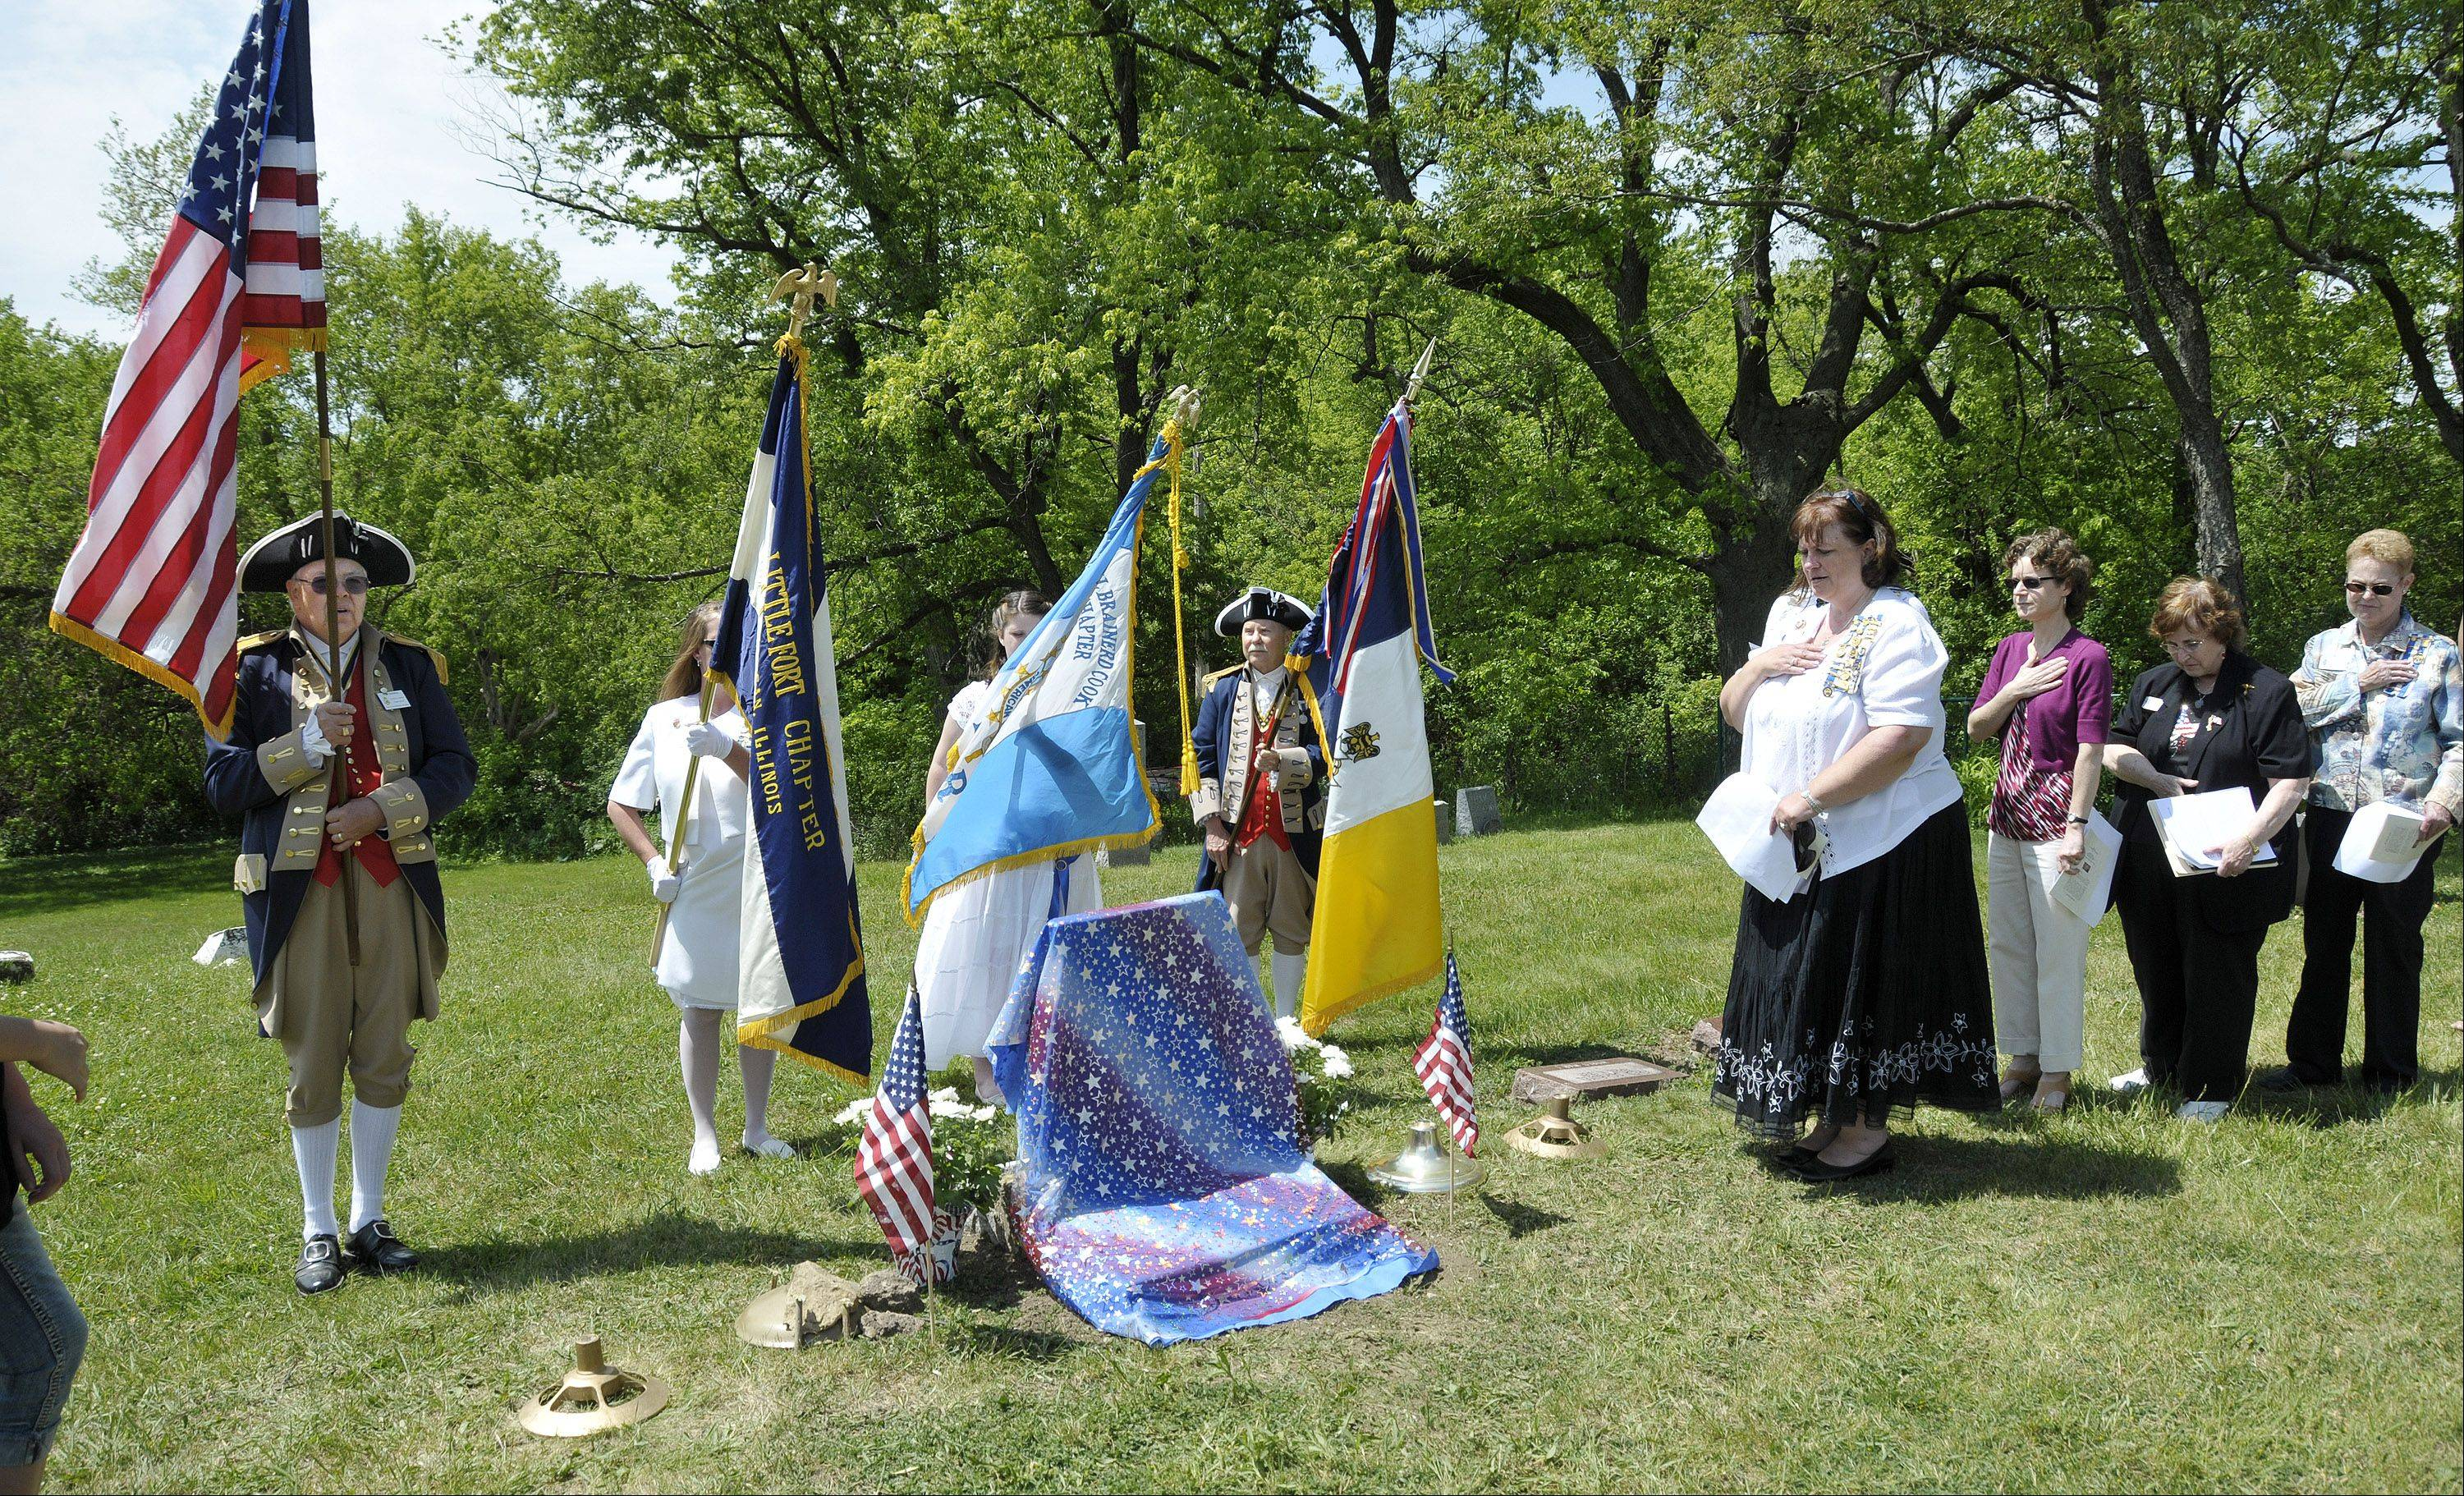 DAR members, at right, say the Pledge of Allegiance, along with the color guard, including members in Revolutionary War uniforms, from the Fox Valley Chapter of the Sons of the American Revolution from Lisle and Naperville.